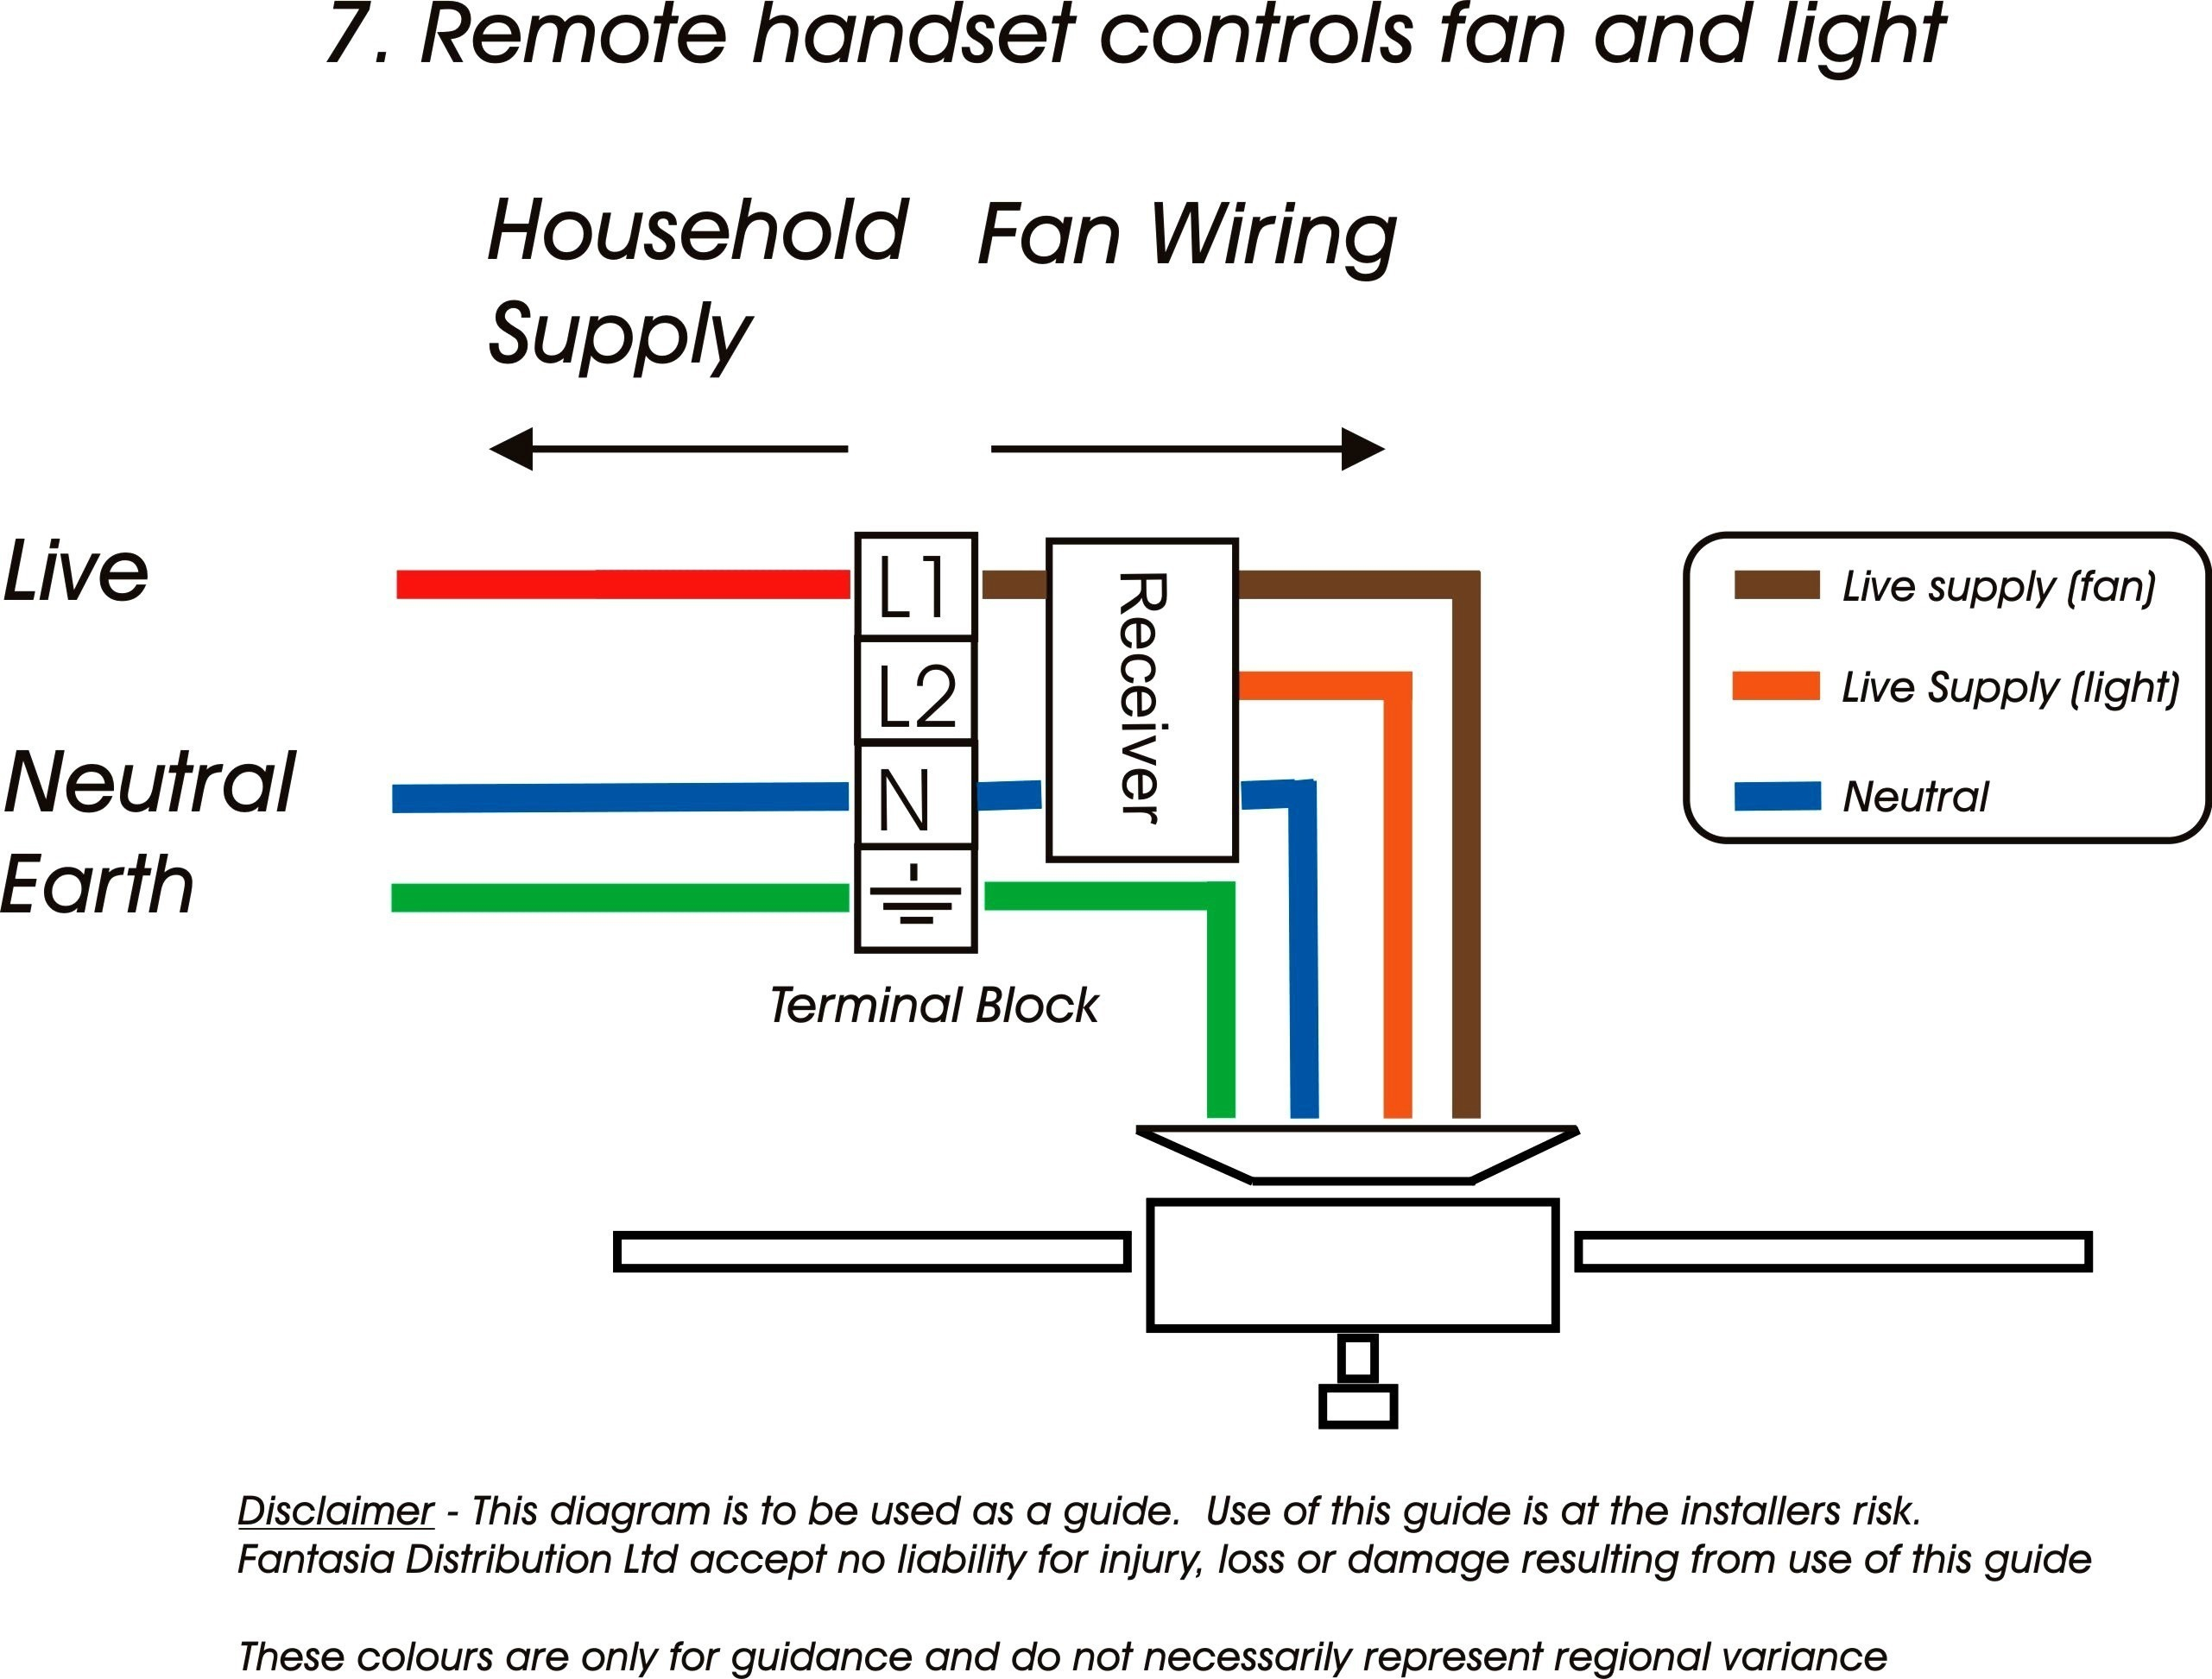 3 way fan switch wiring diagram Download-Fan Wiring Diagram Best Unique 3 Speed Ceiling Switch 2 11-d